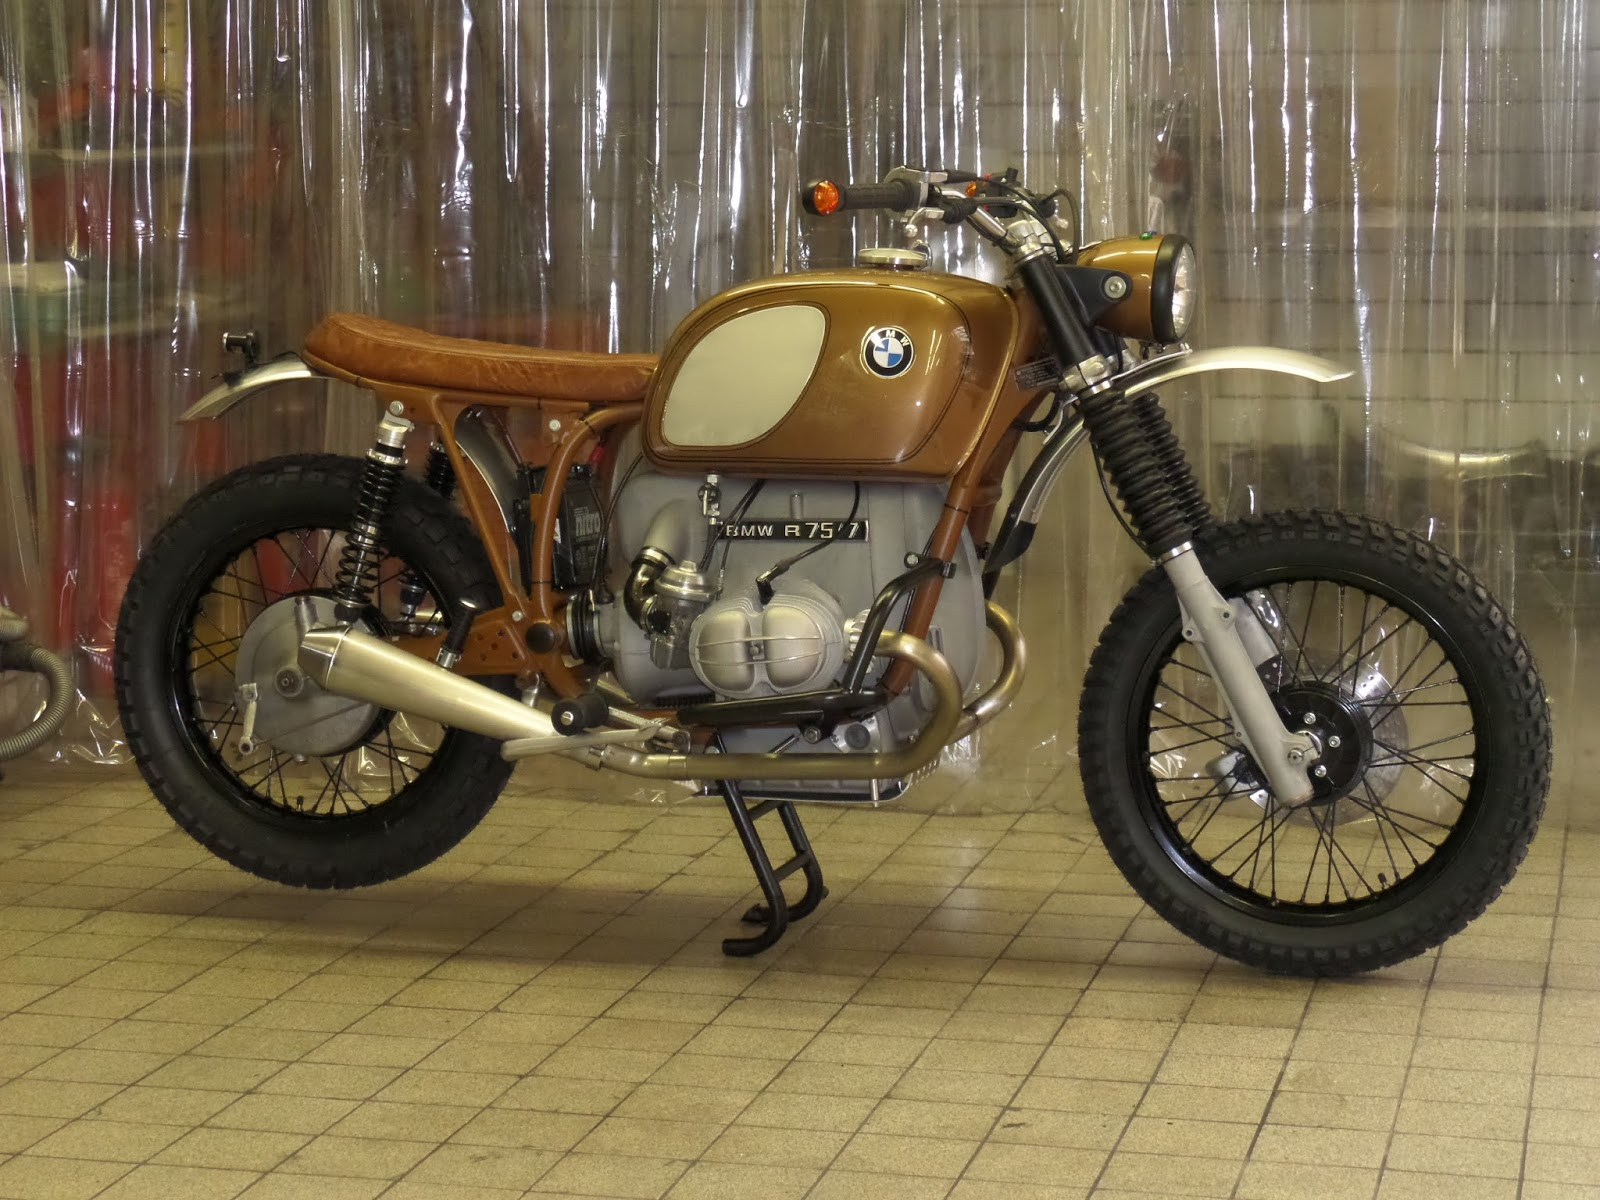 Build A BMW >> Kingston Custom Motorcycles: Motorcycles